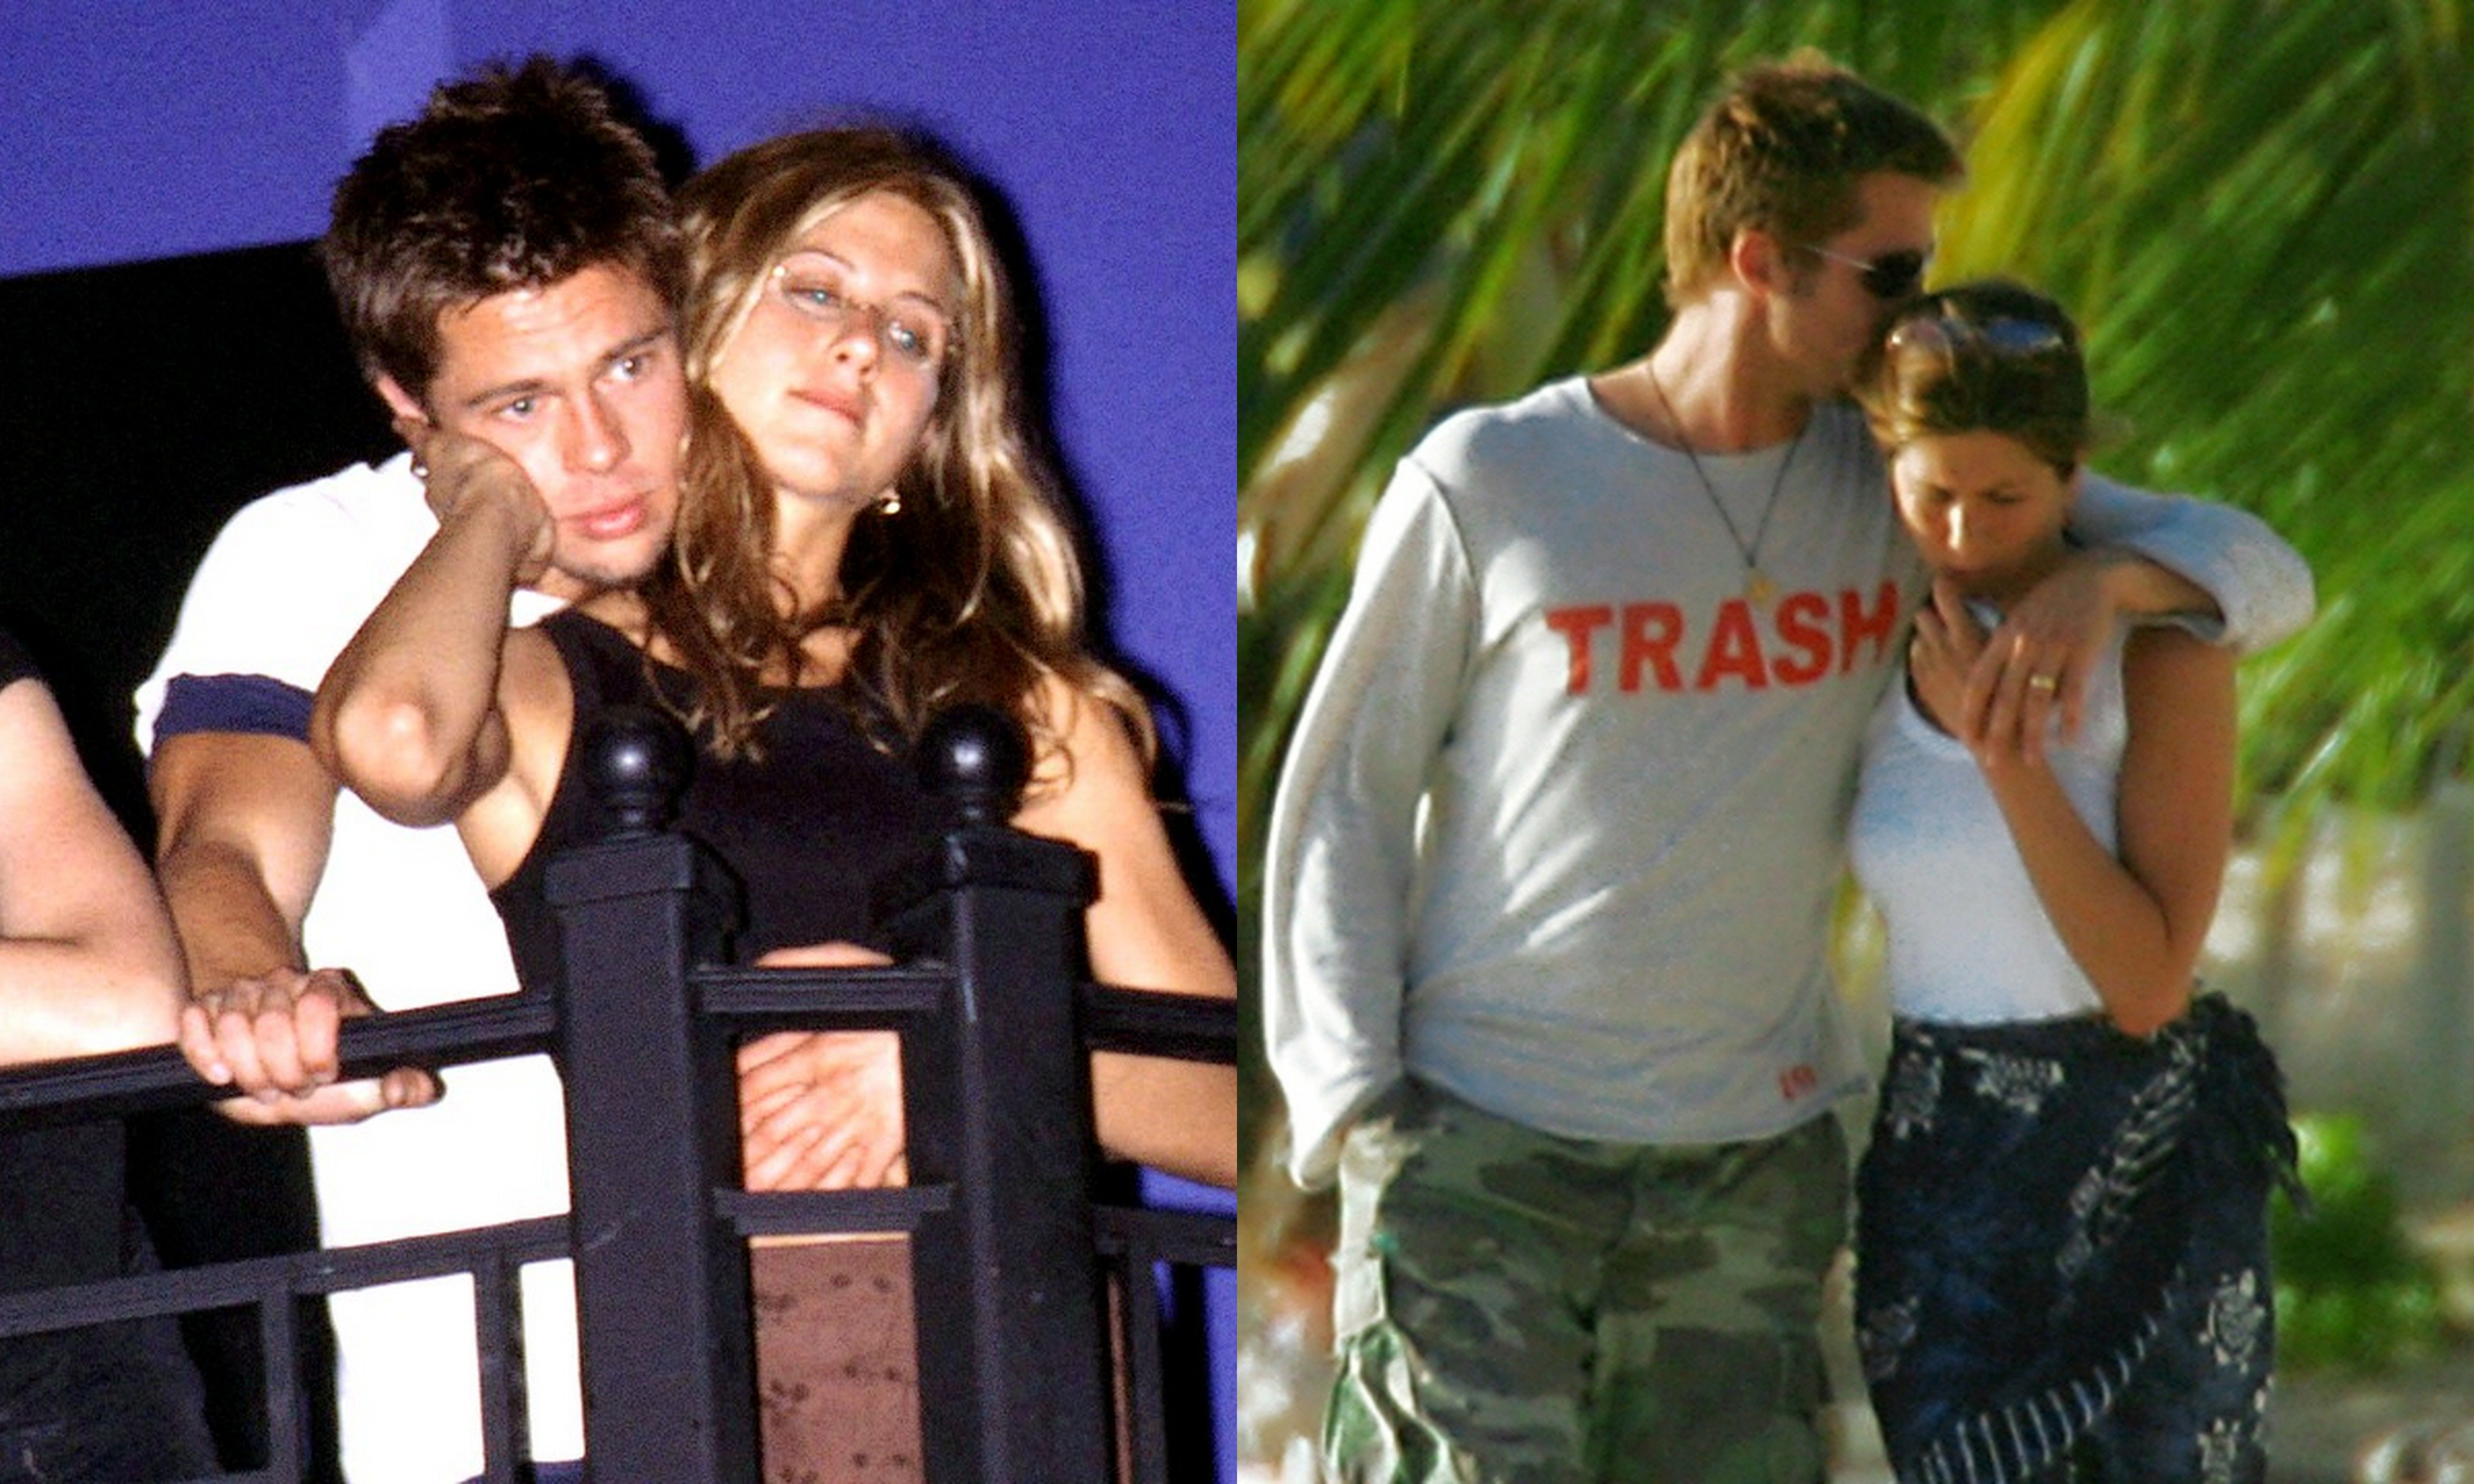 Brad Jen The First Pic May 1998 The Last Pic January 2005 Brad Pitt And Jennifer Brad Pitt Jennifer Aniston Jennifer Aniston